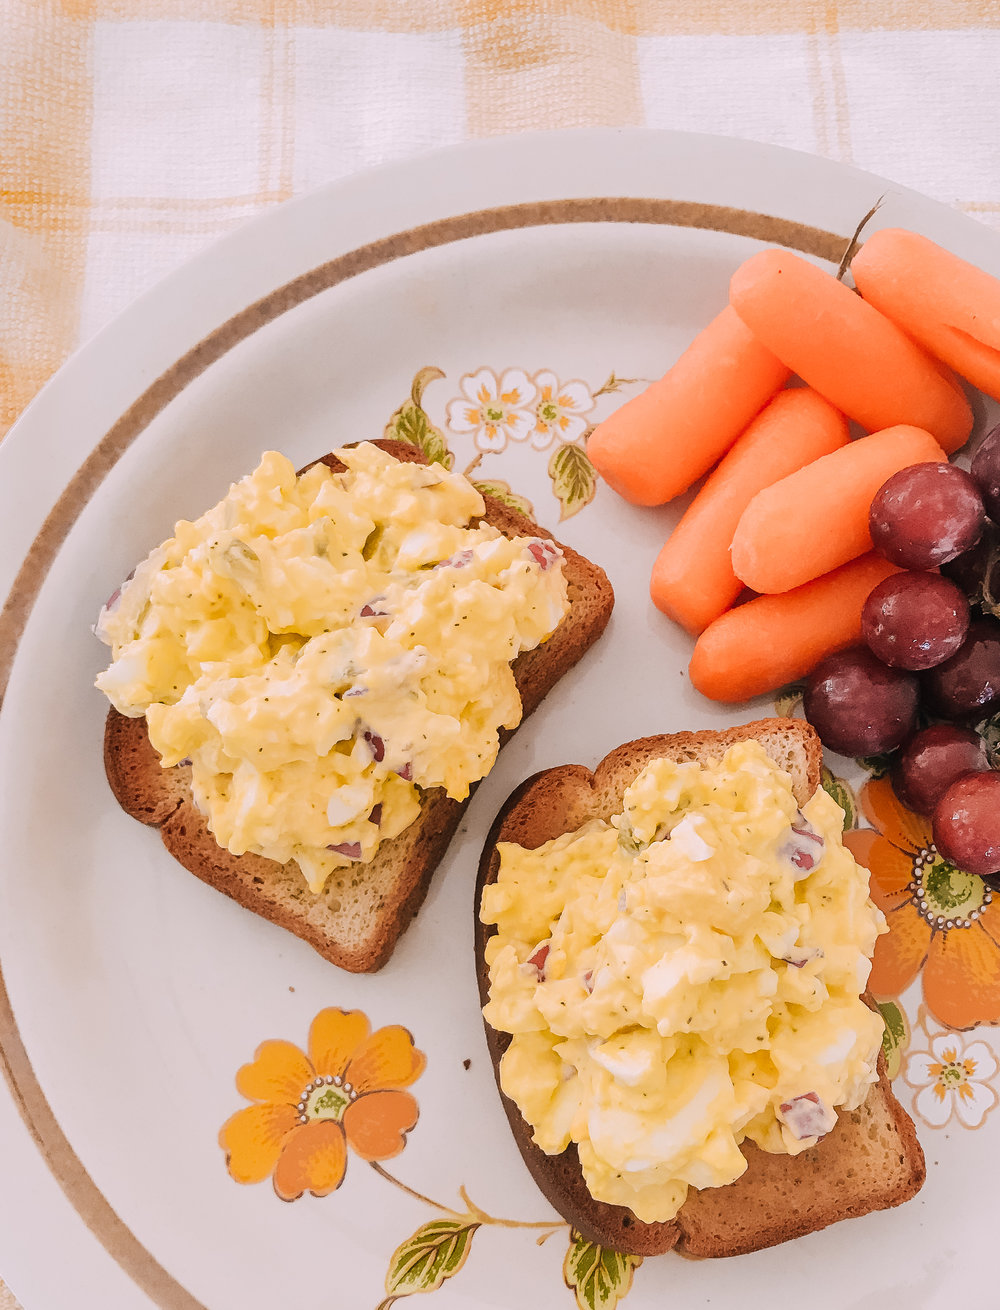 Egg salad on gluten free bread with carrots and grapes, cooked with an instant pot